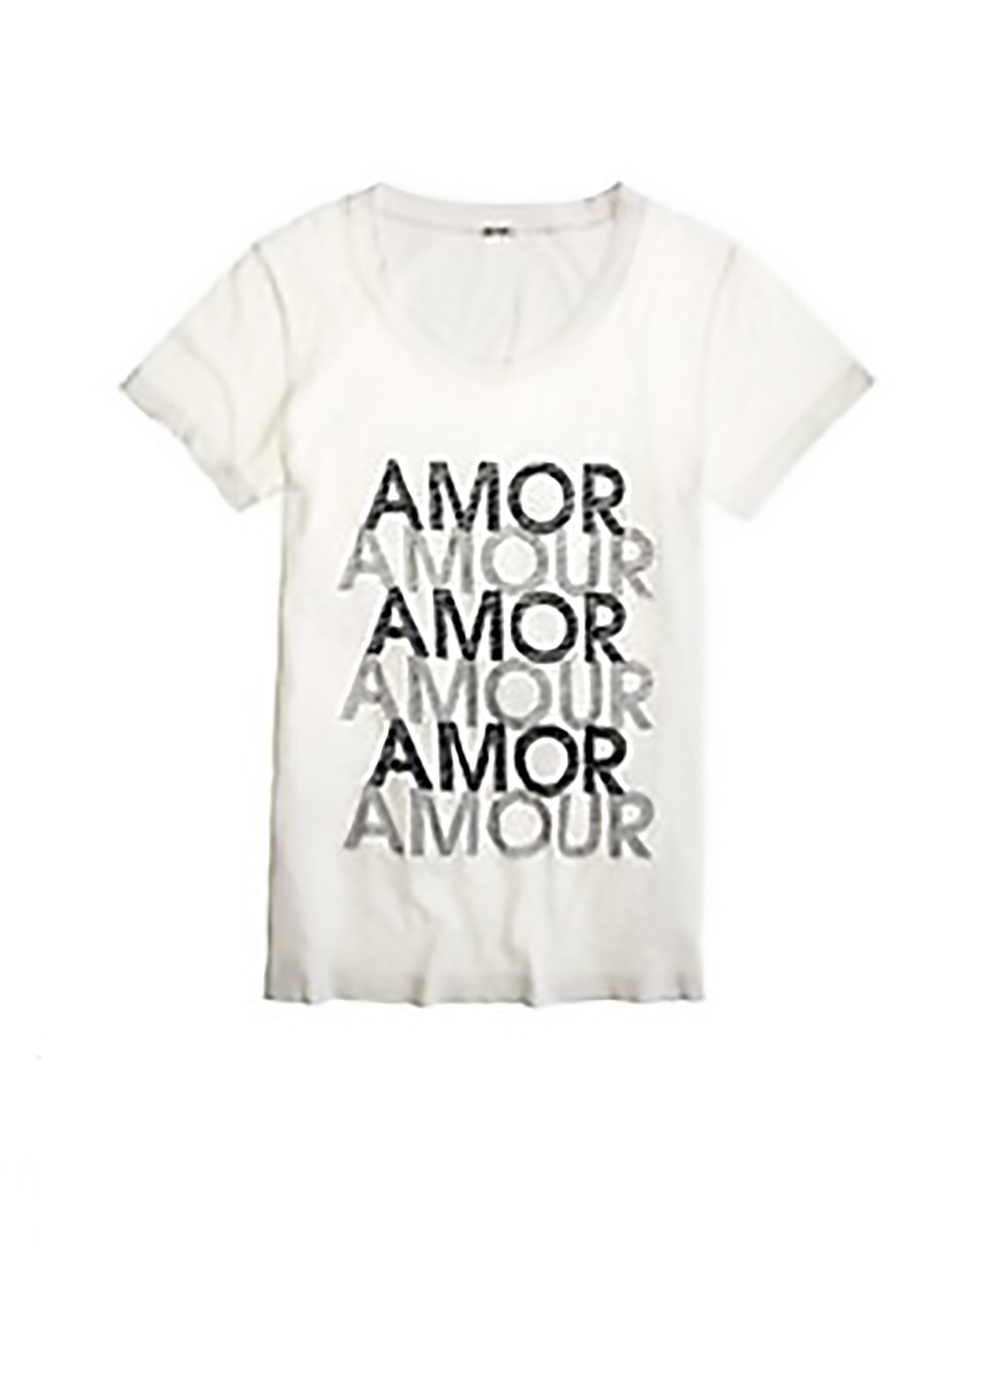 jcrew armour tee love yourself 1500.jpg